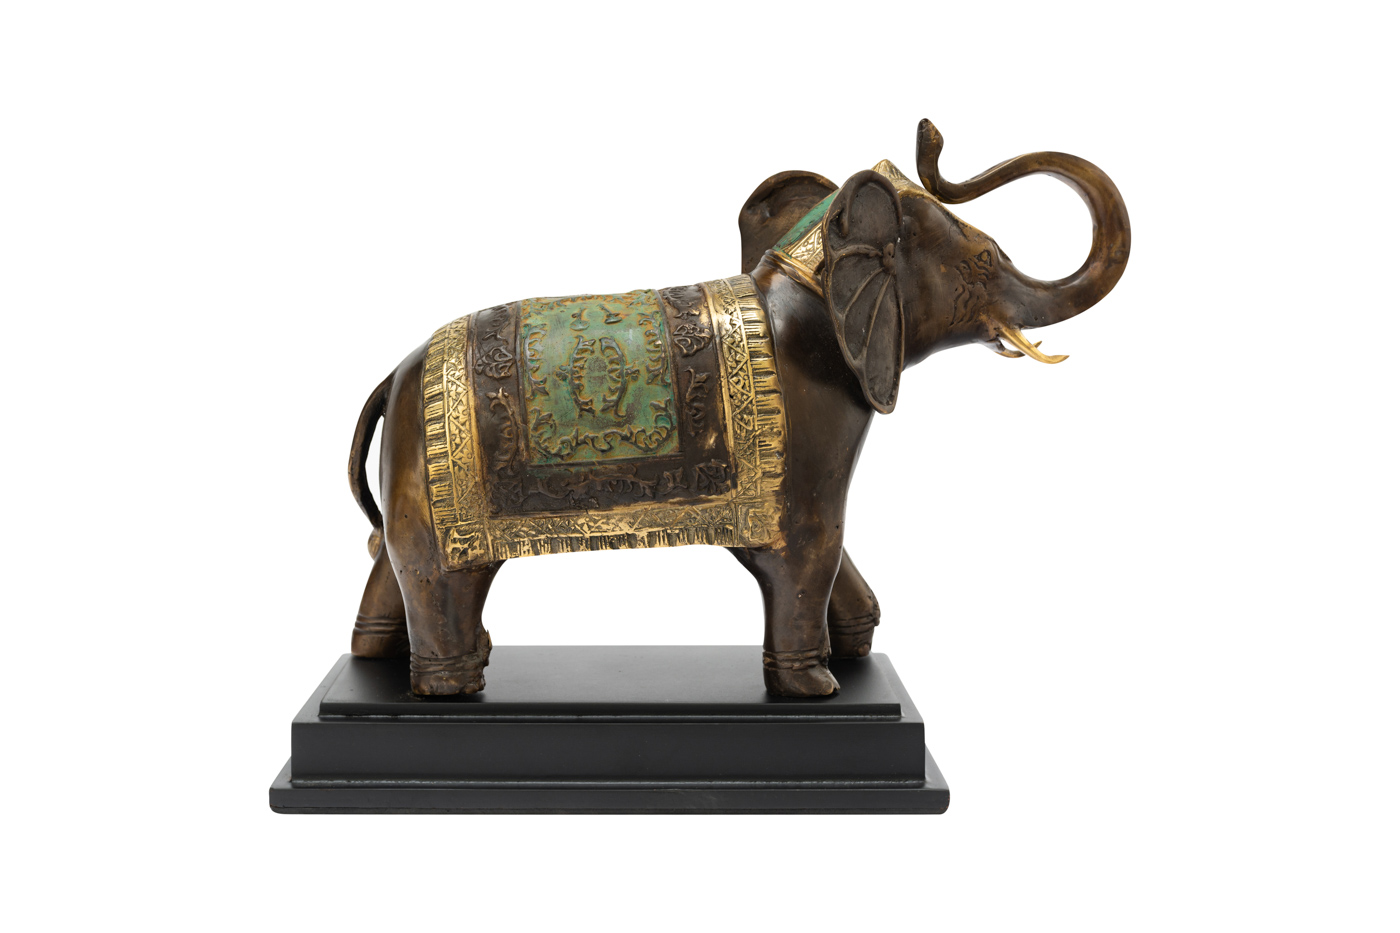 Decorative Elephant in bronze with wooden base